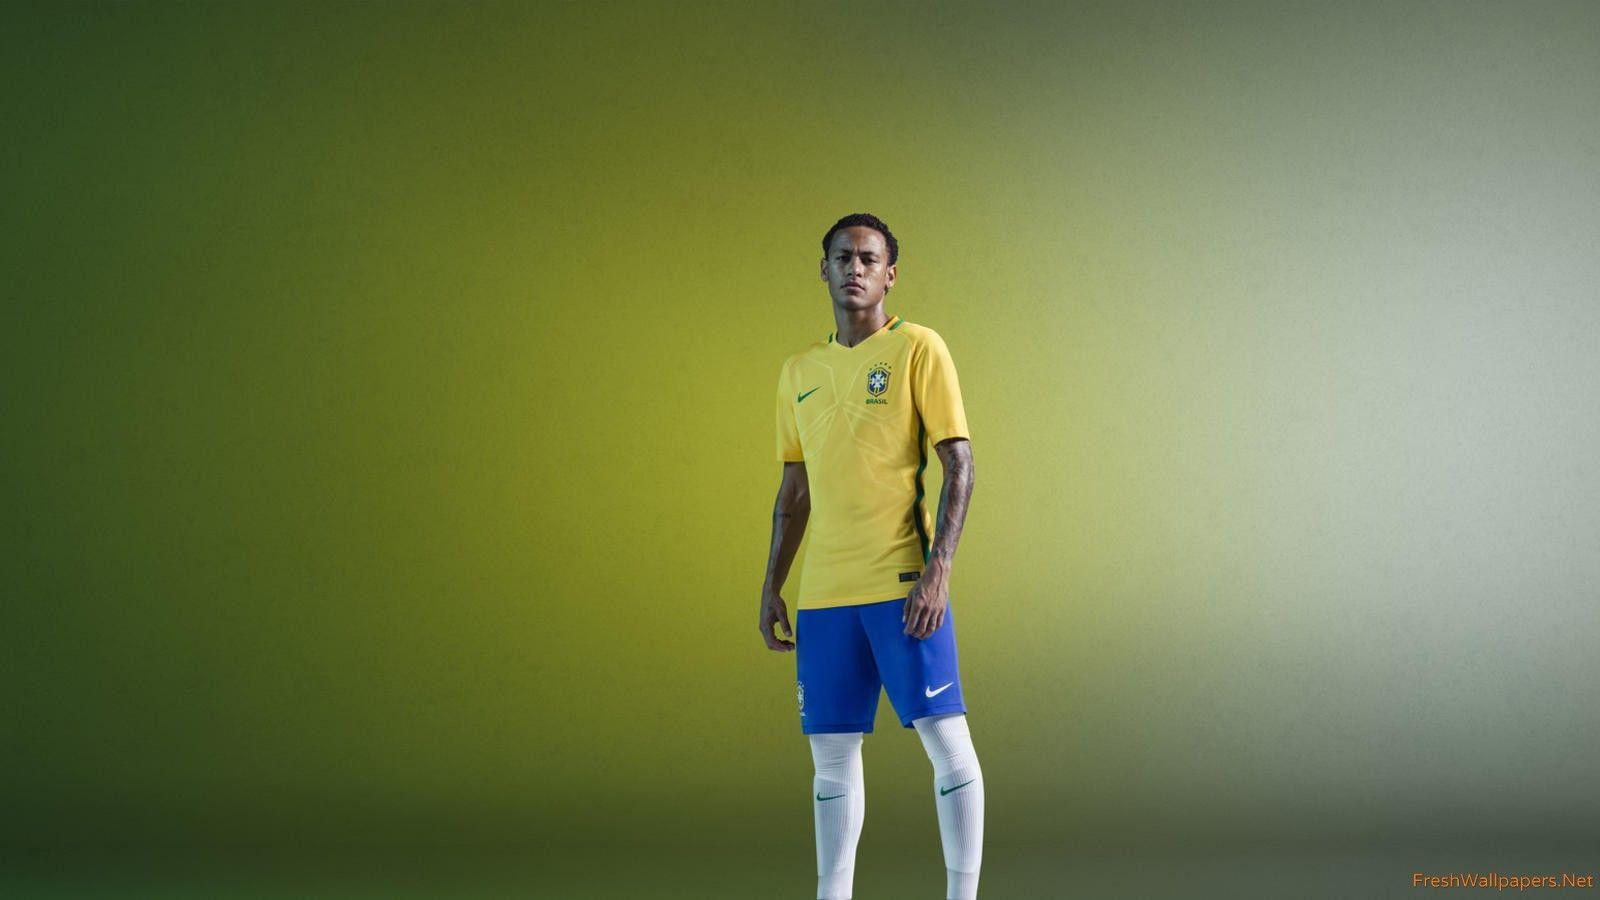 Neymar Jr Brazil 2016 Nike Home Kit Yellow wallpapers | Freshwallpapers